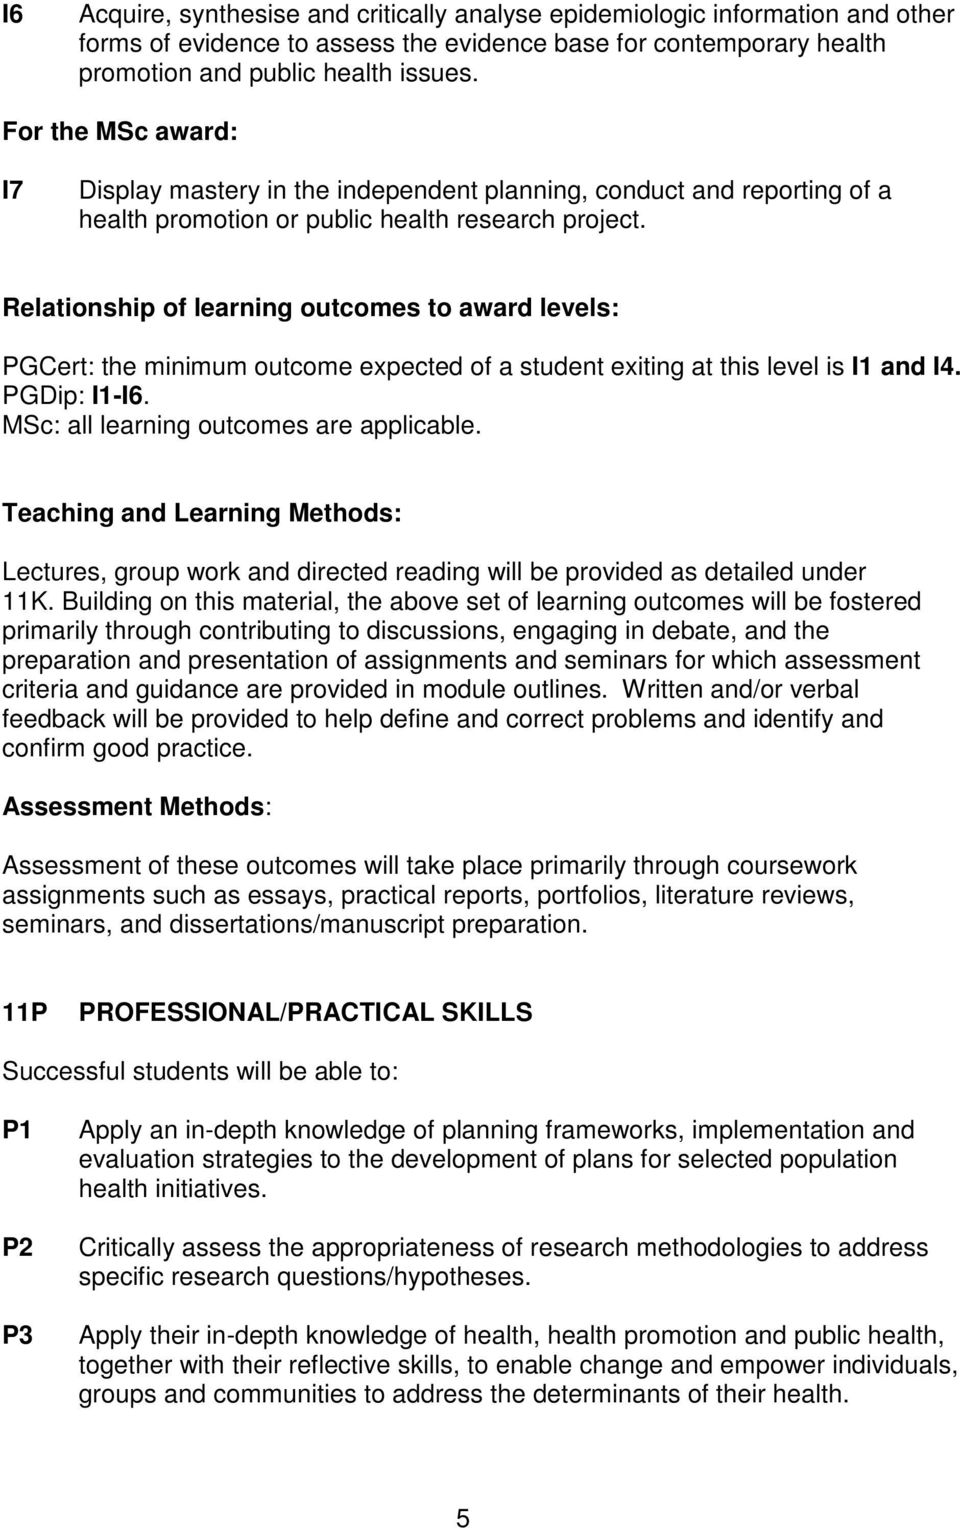 Relationship of learning outcomes to award levels: PGCert: the minimum outcome expected of a student exiting at this level is I1 and I4. PGDip: I1-I6. MSc: all learning outcomes are applicable.